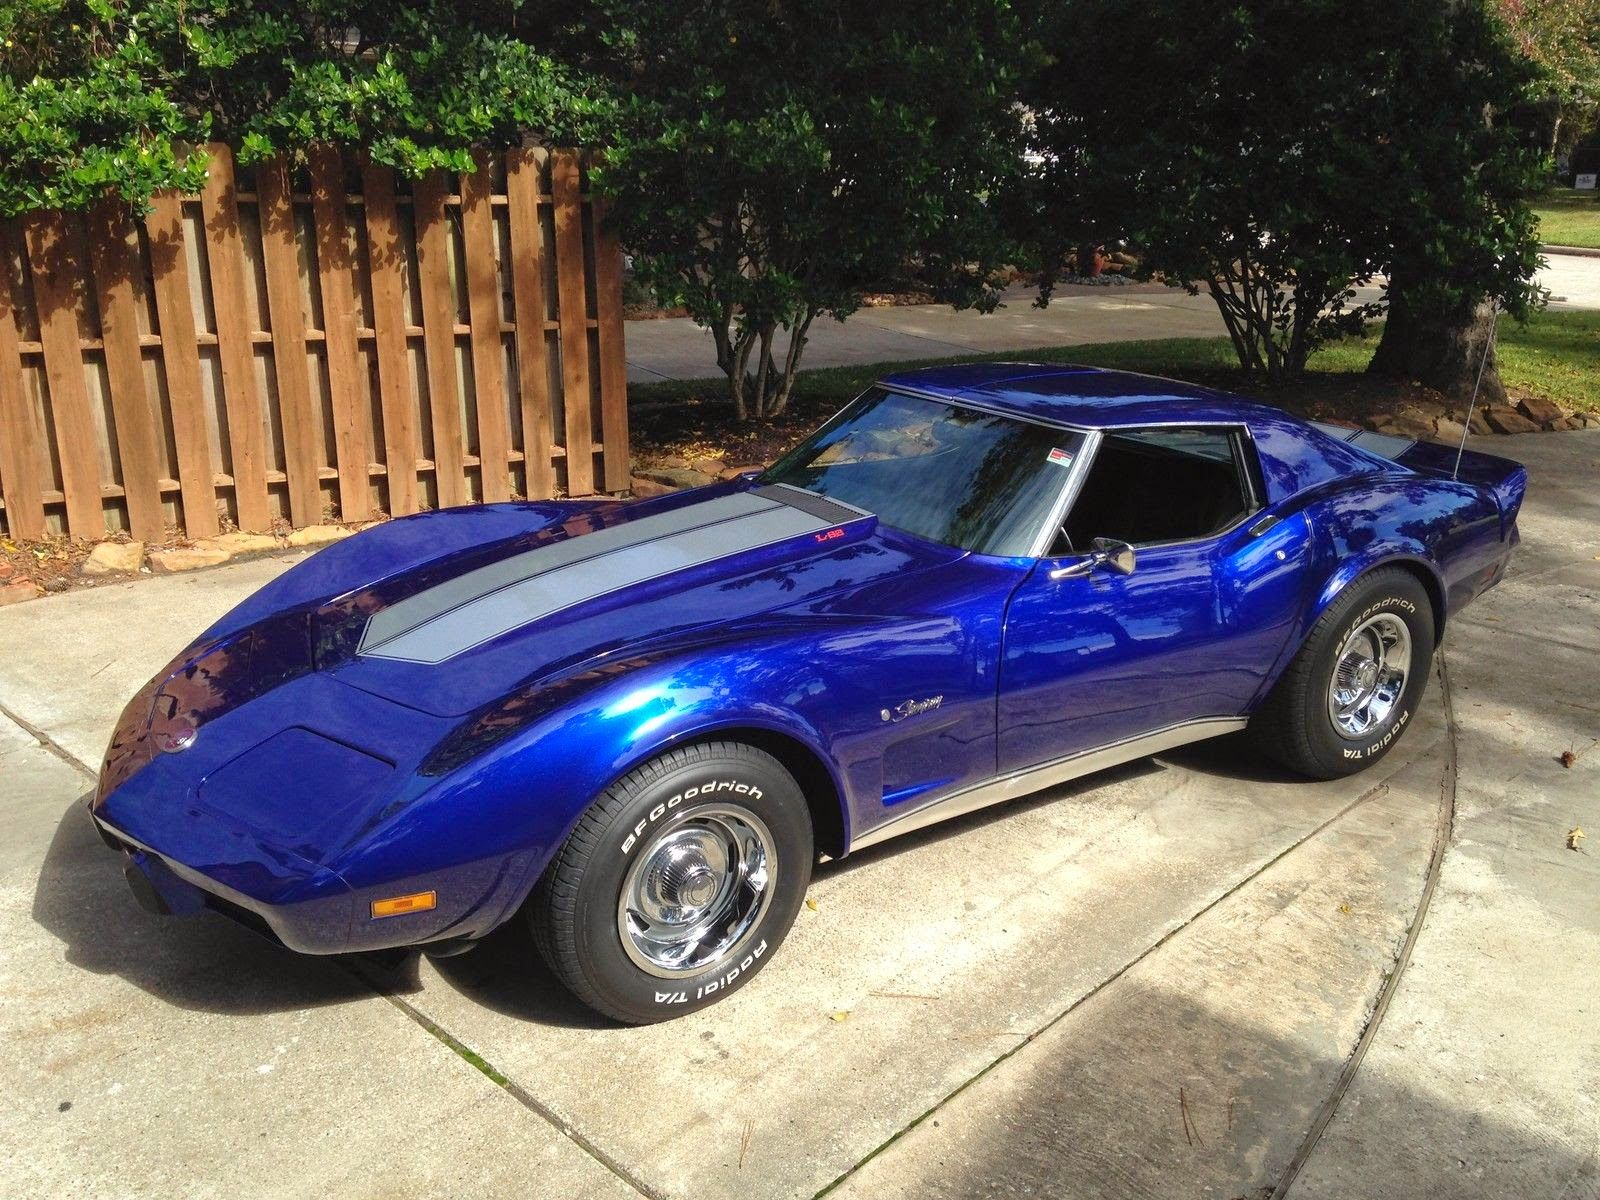 1975 Corvette Convertible, 4 speed with Air